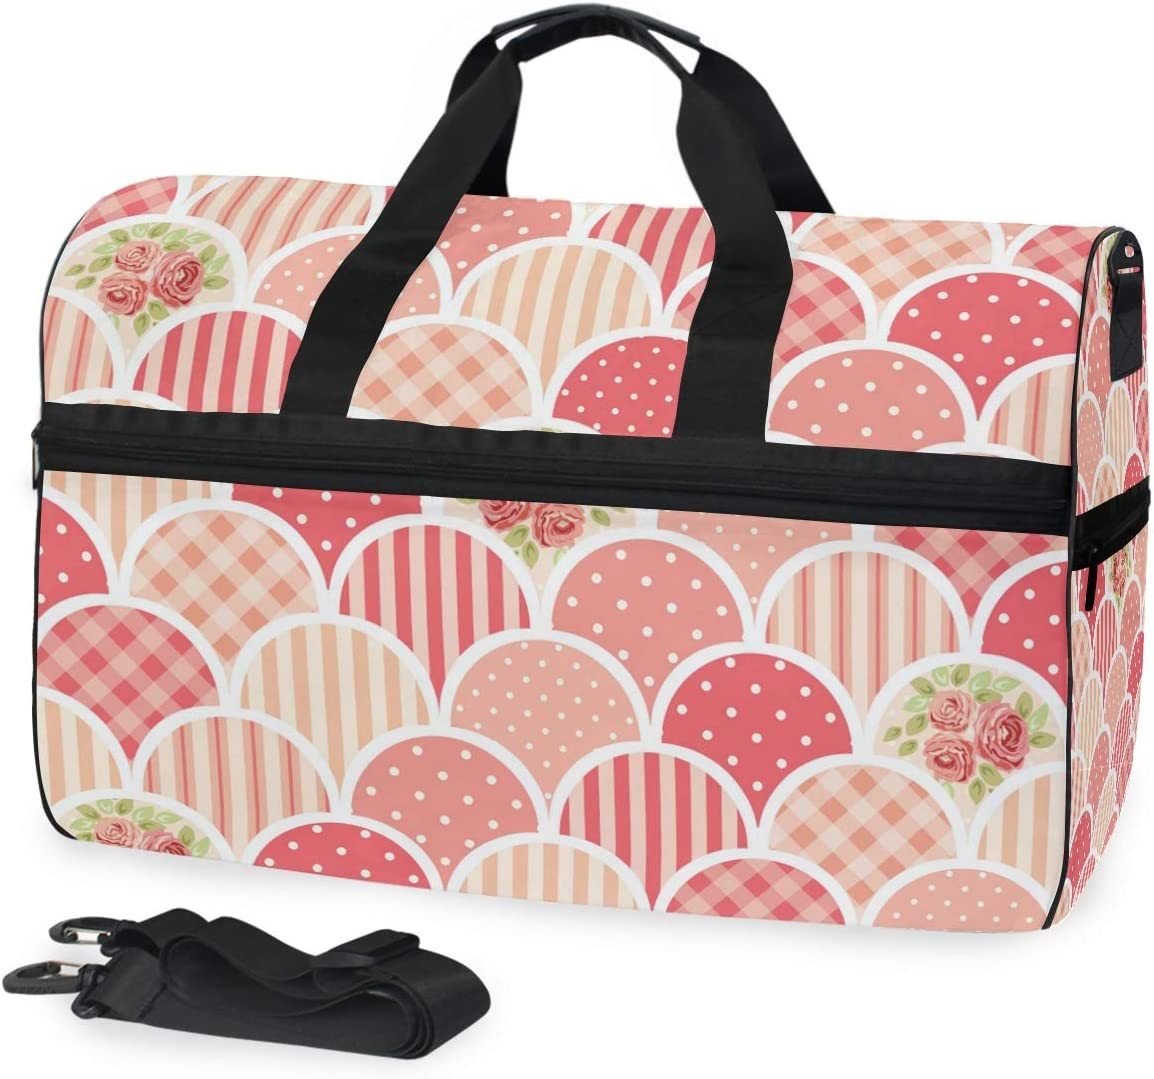 Travel Duffels Flower Stripe Pattern Duffle Bag Luggage Sports Gym for Women /& Men